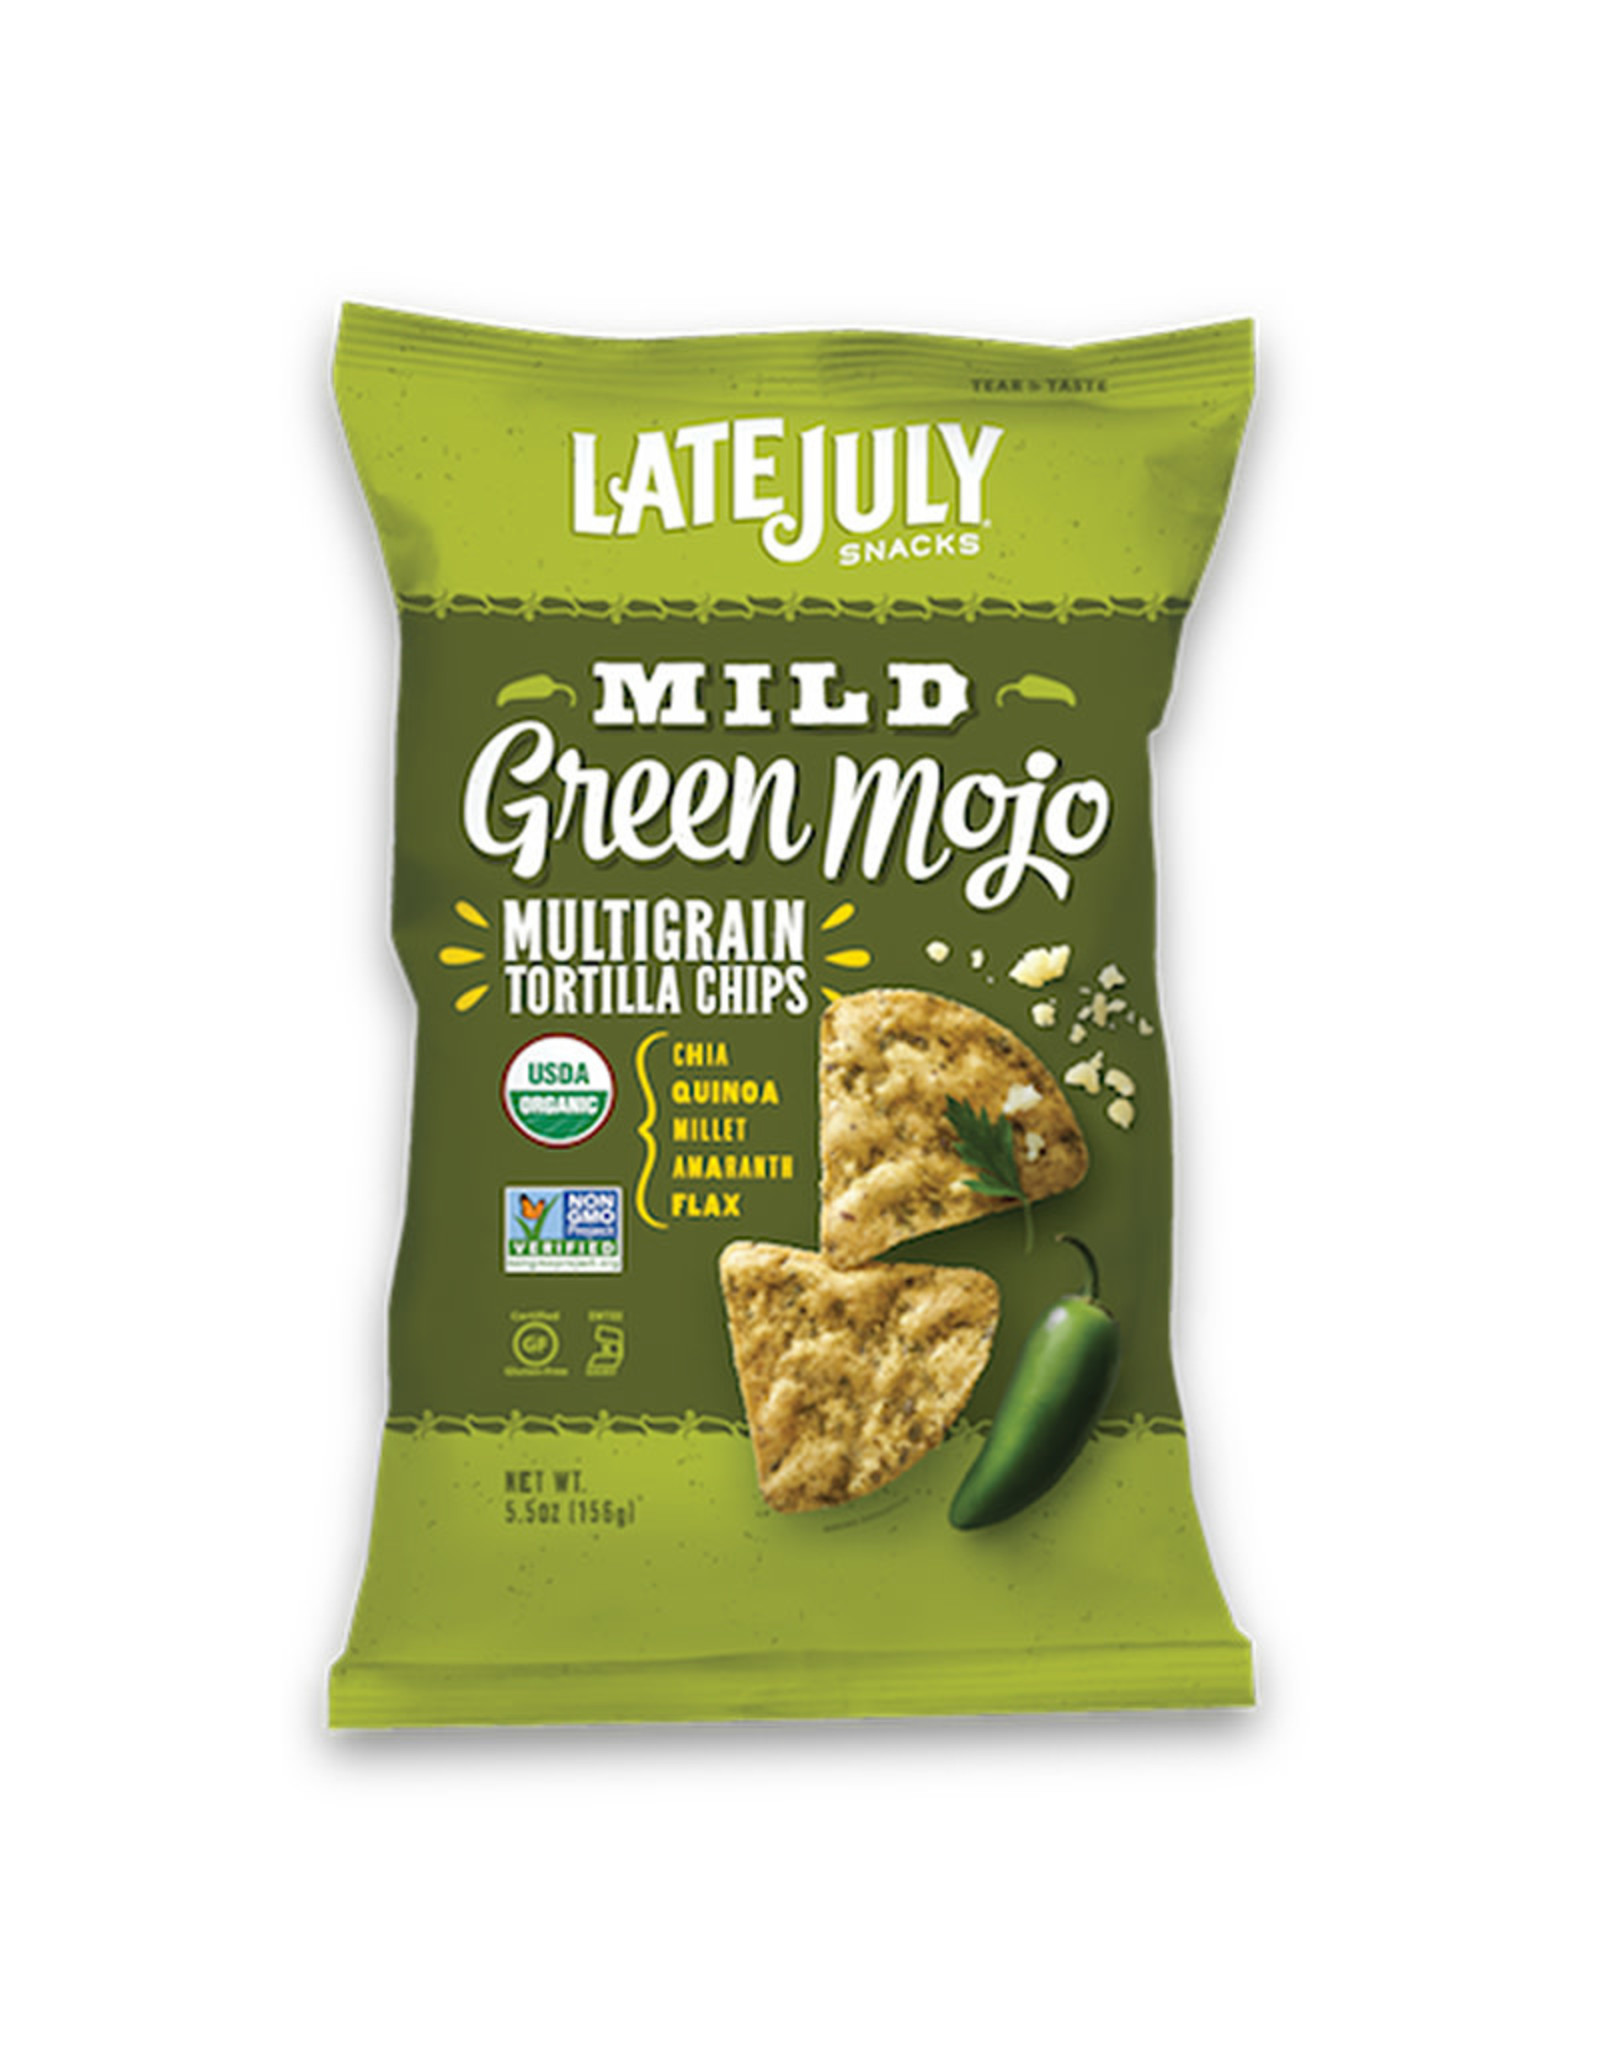 Late July Late July - Multigrain Snack Chips, Mild Green Mojo (156g)